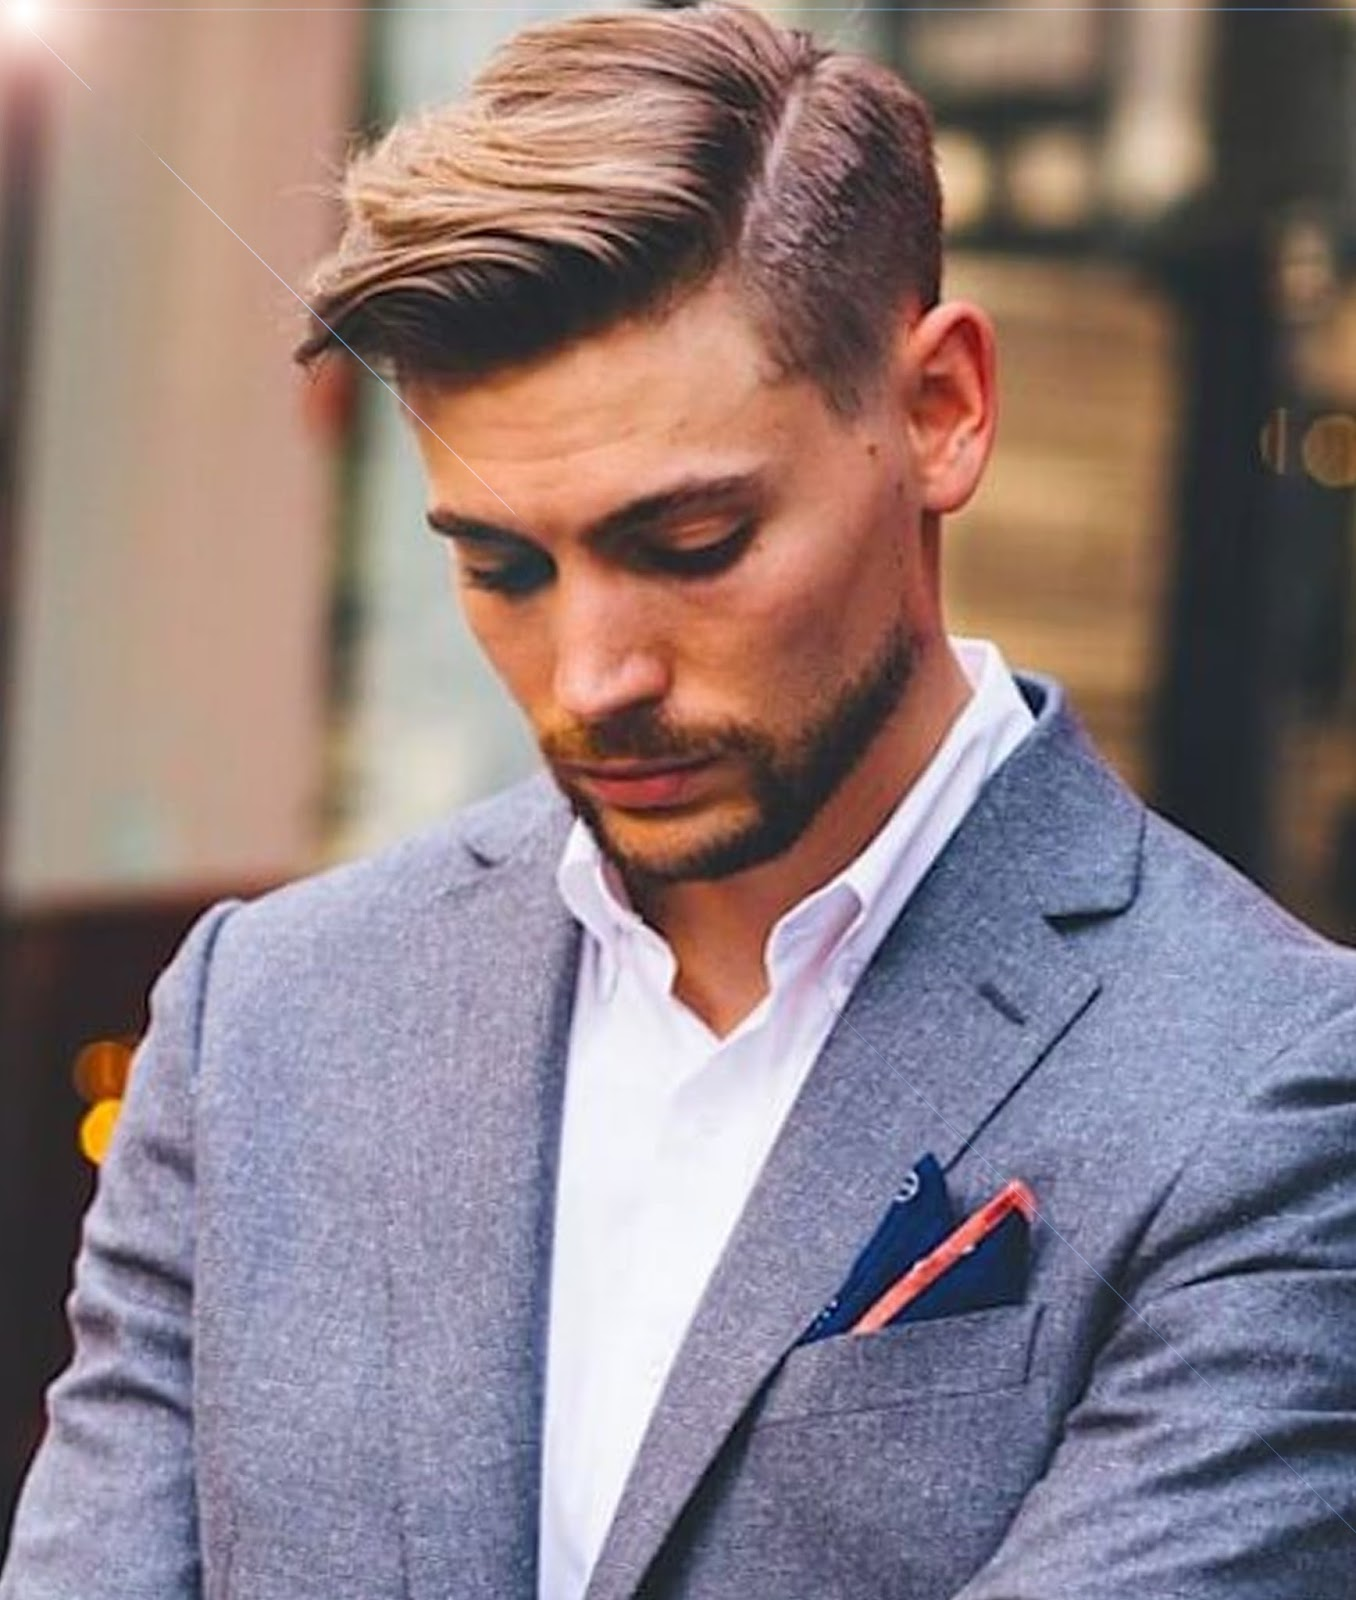 Top Short Mens Hairstyles Of 2016 Hairstyles Spot